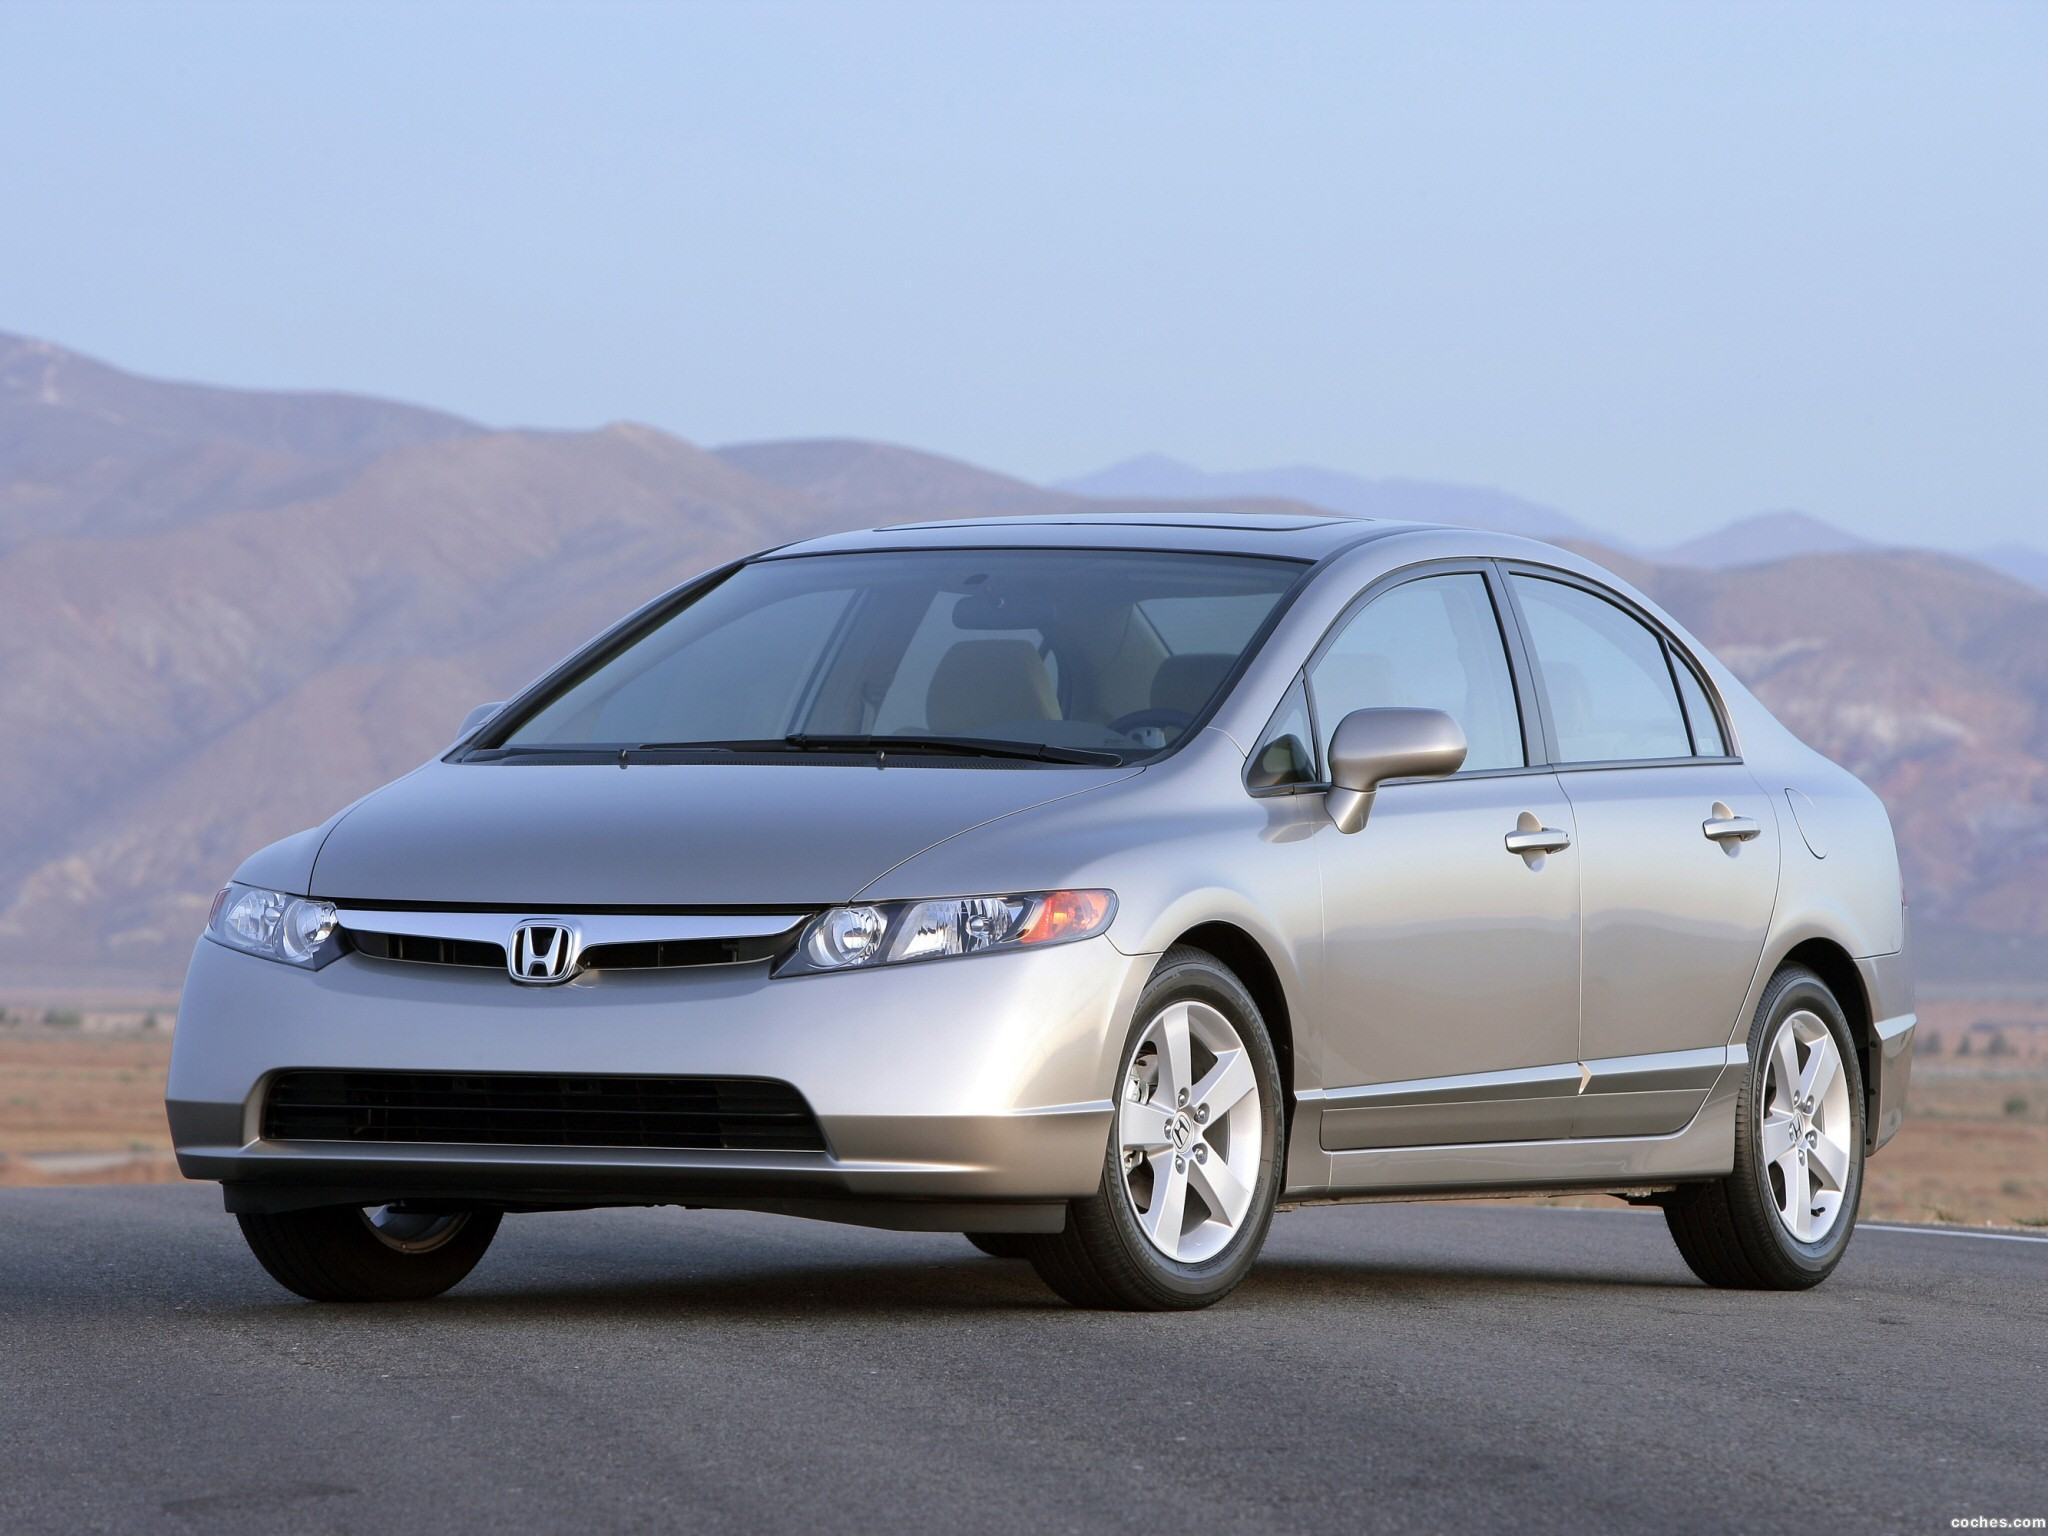 Foto 0 de Honda Civic Sedan 2006